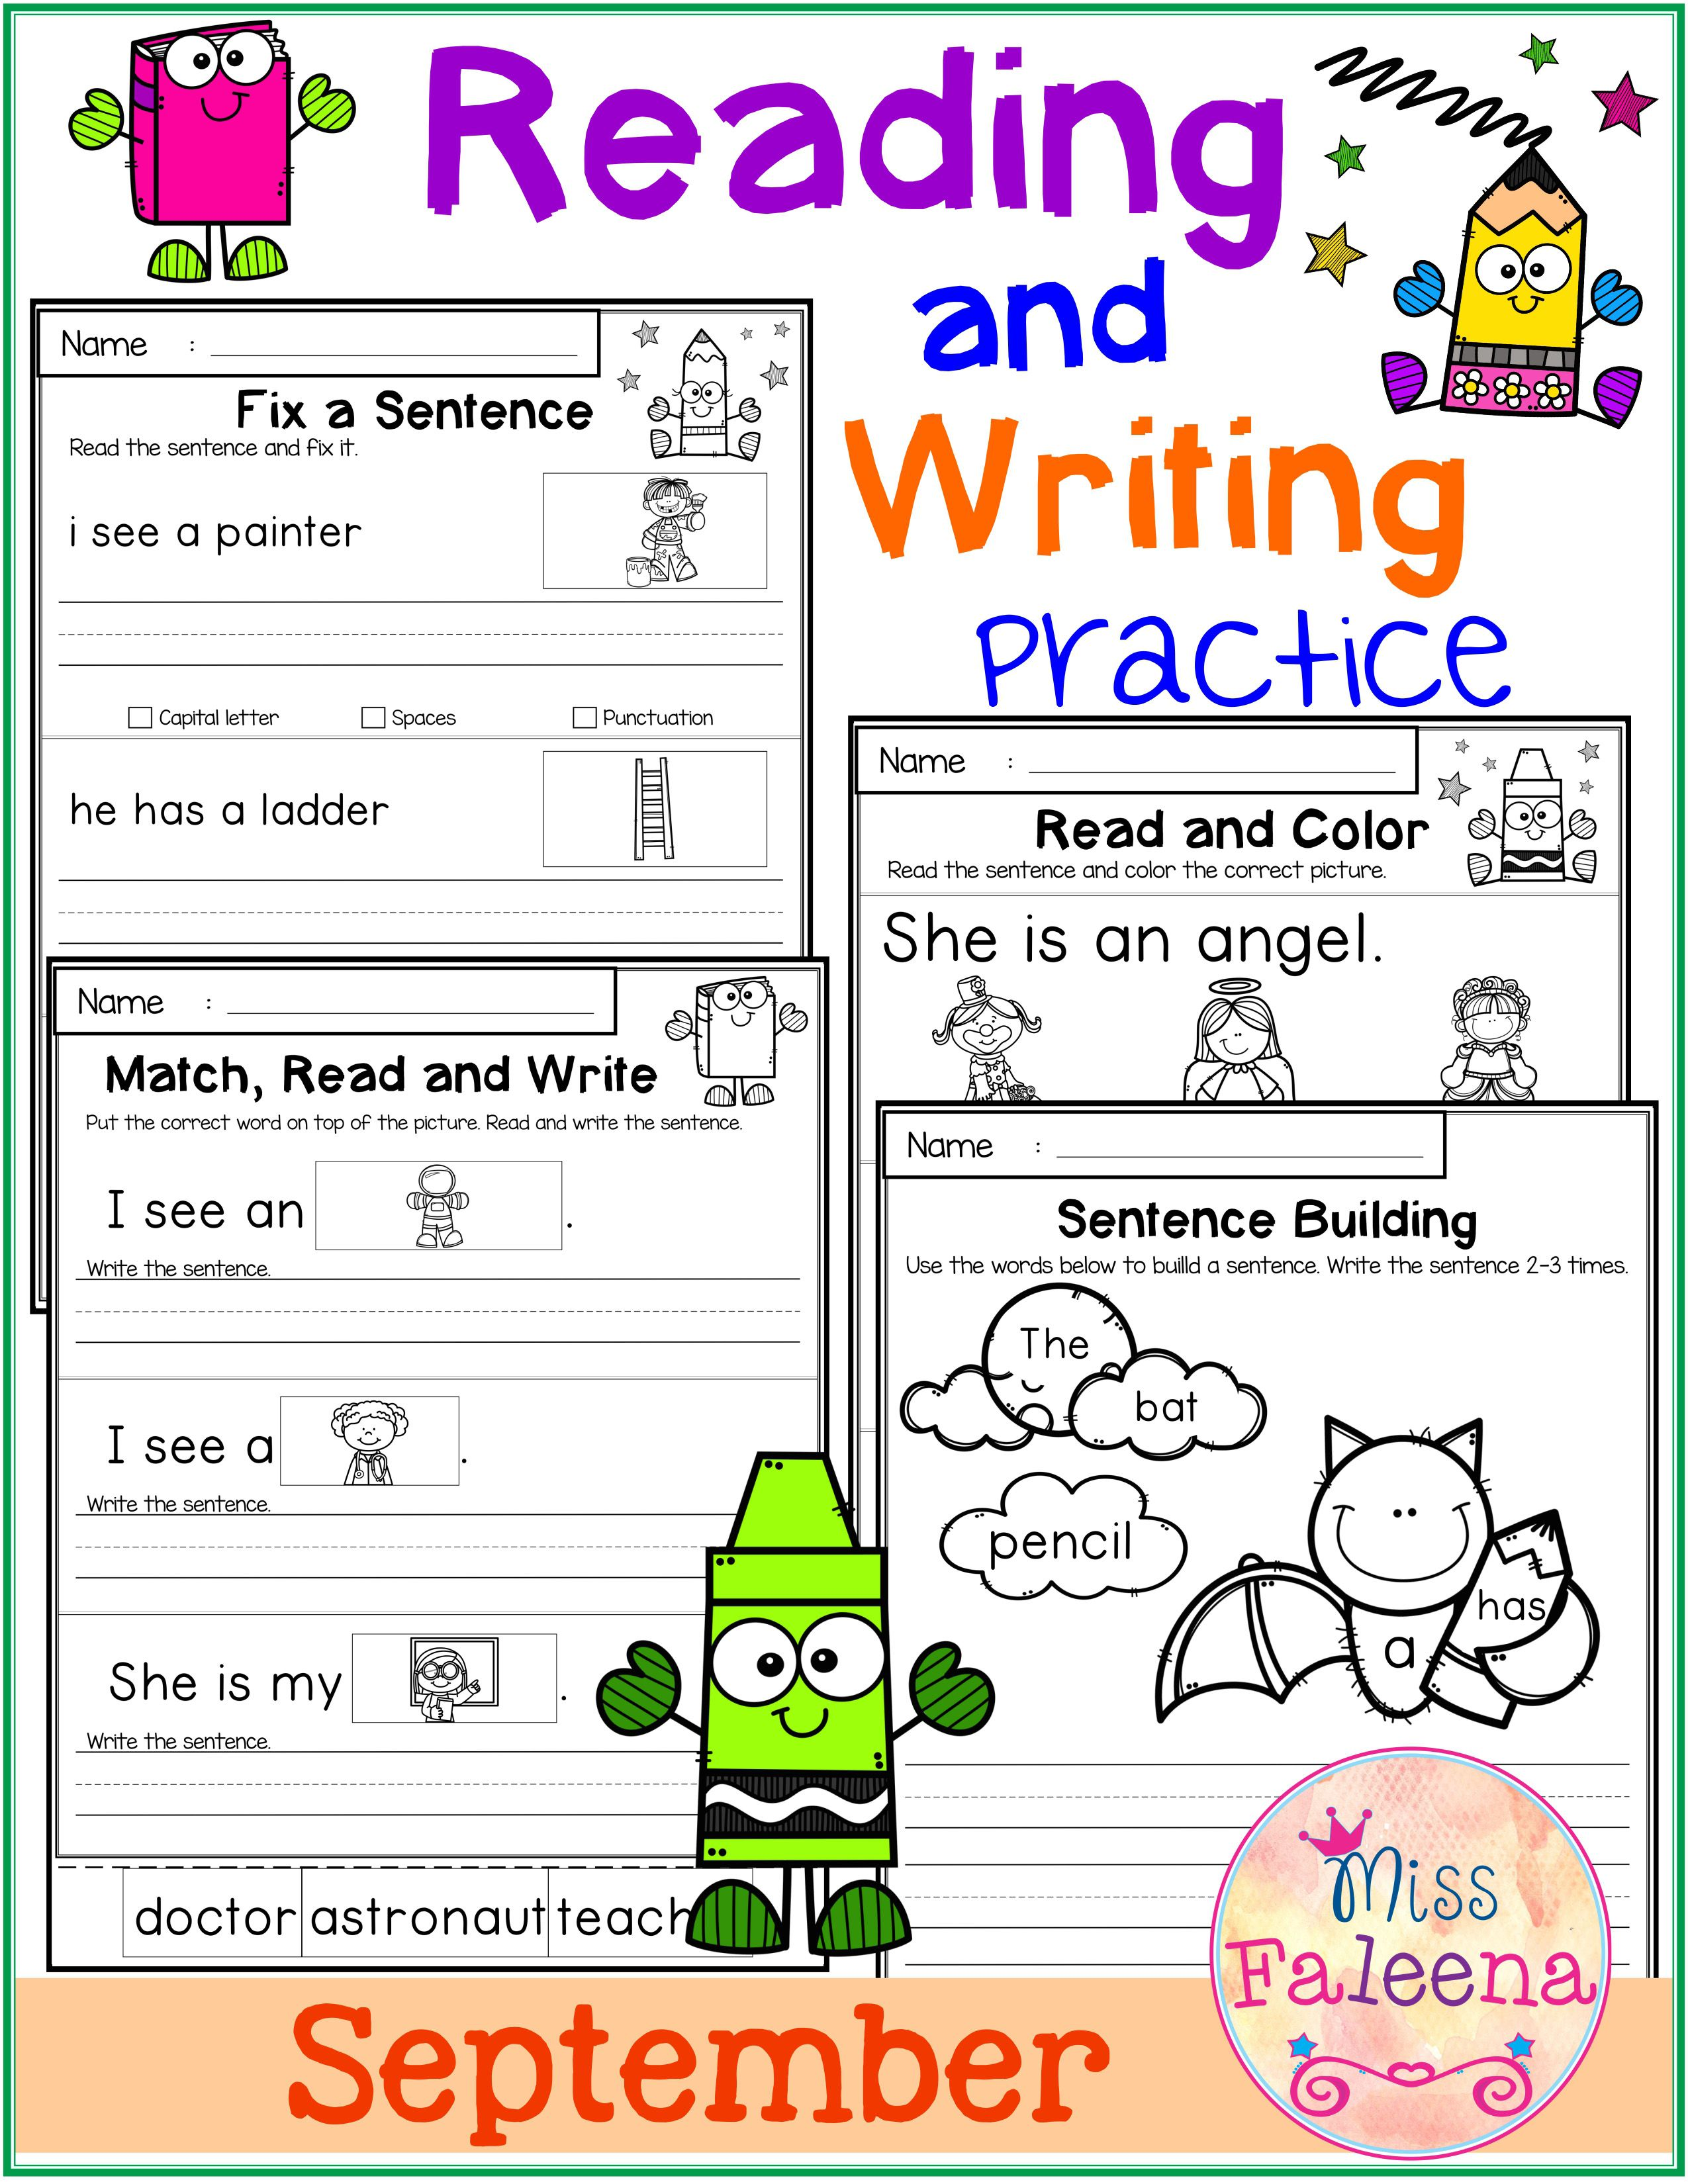 September Reading And Writing Practice This Product Has